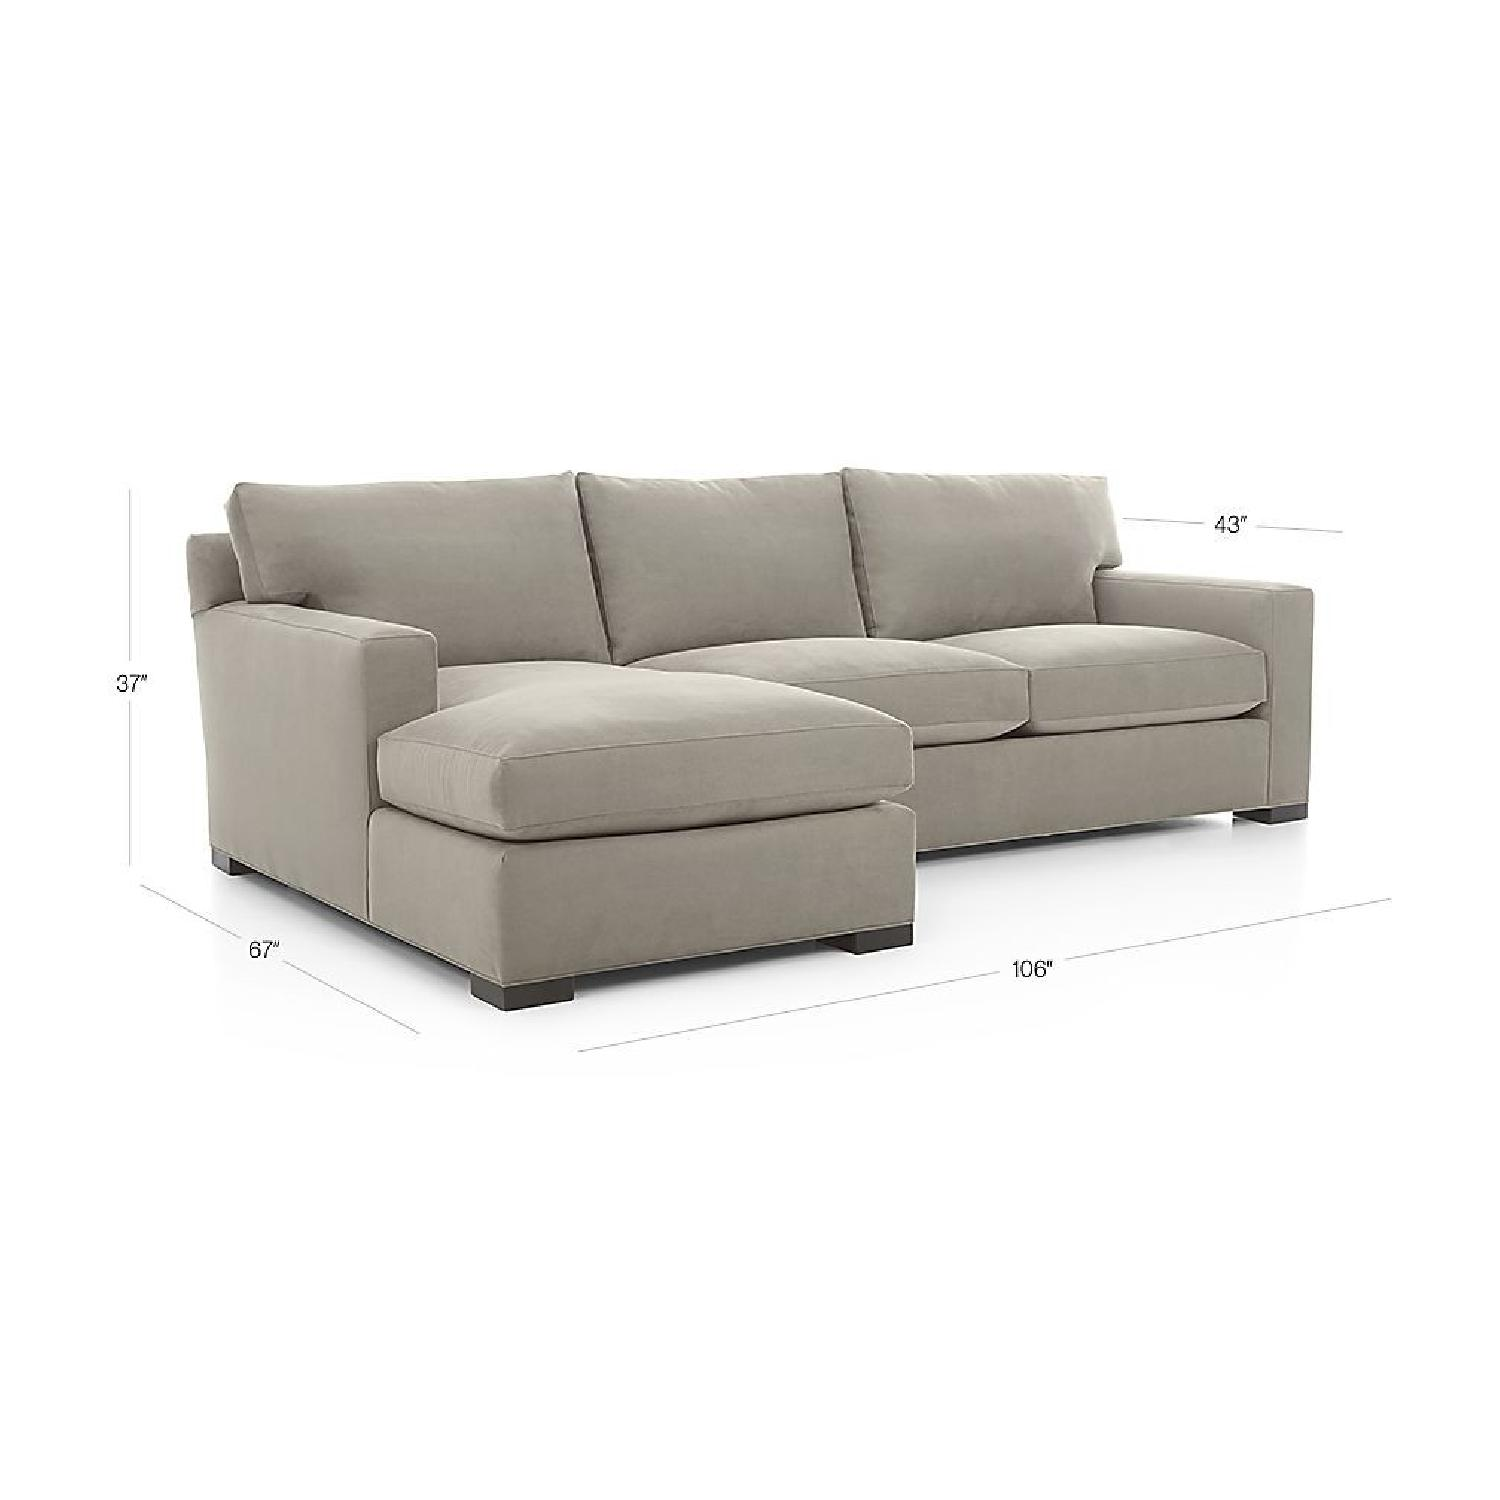 Crate & Barrel Red 2-Piece Sectional Sofa - image-1